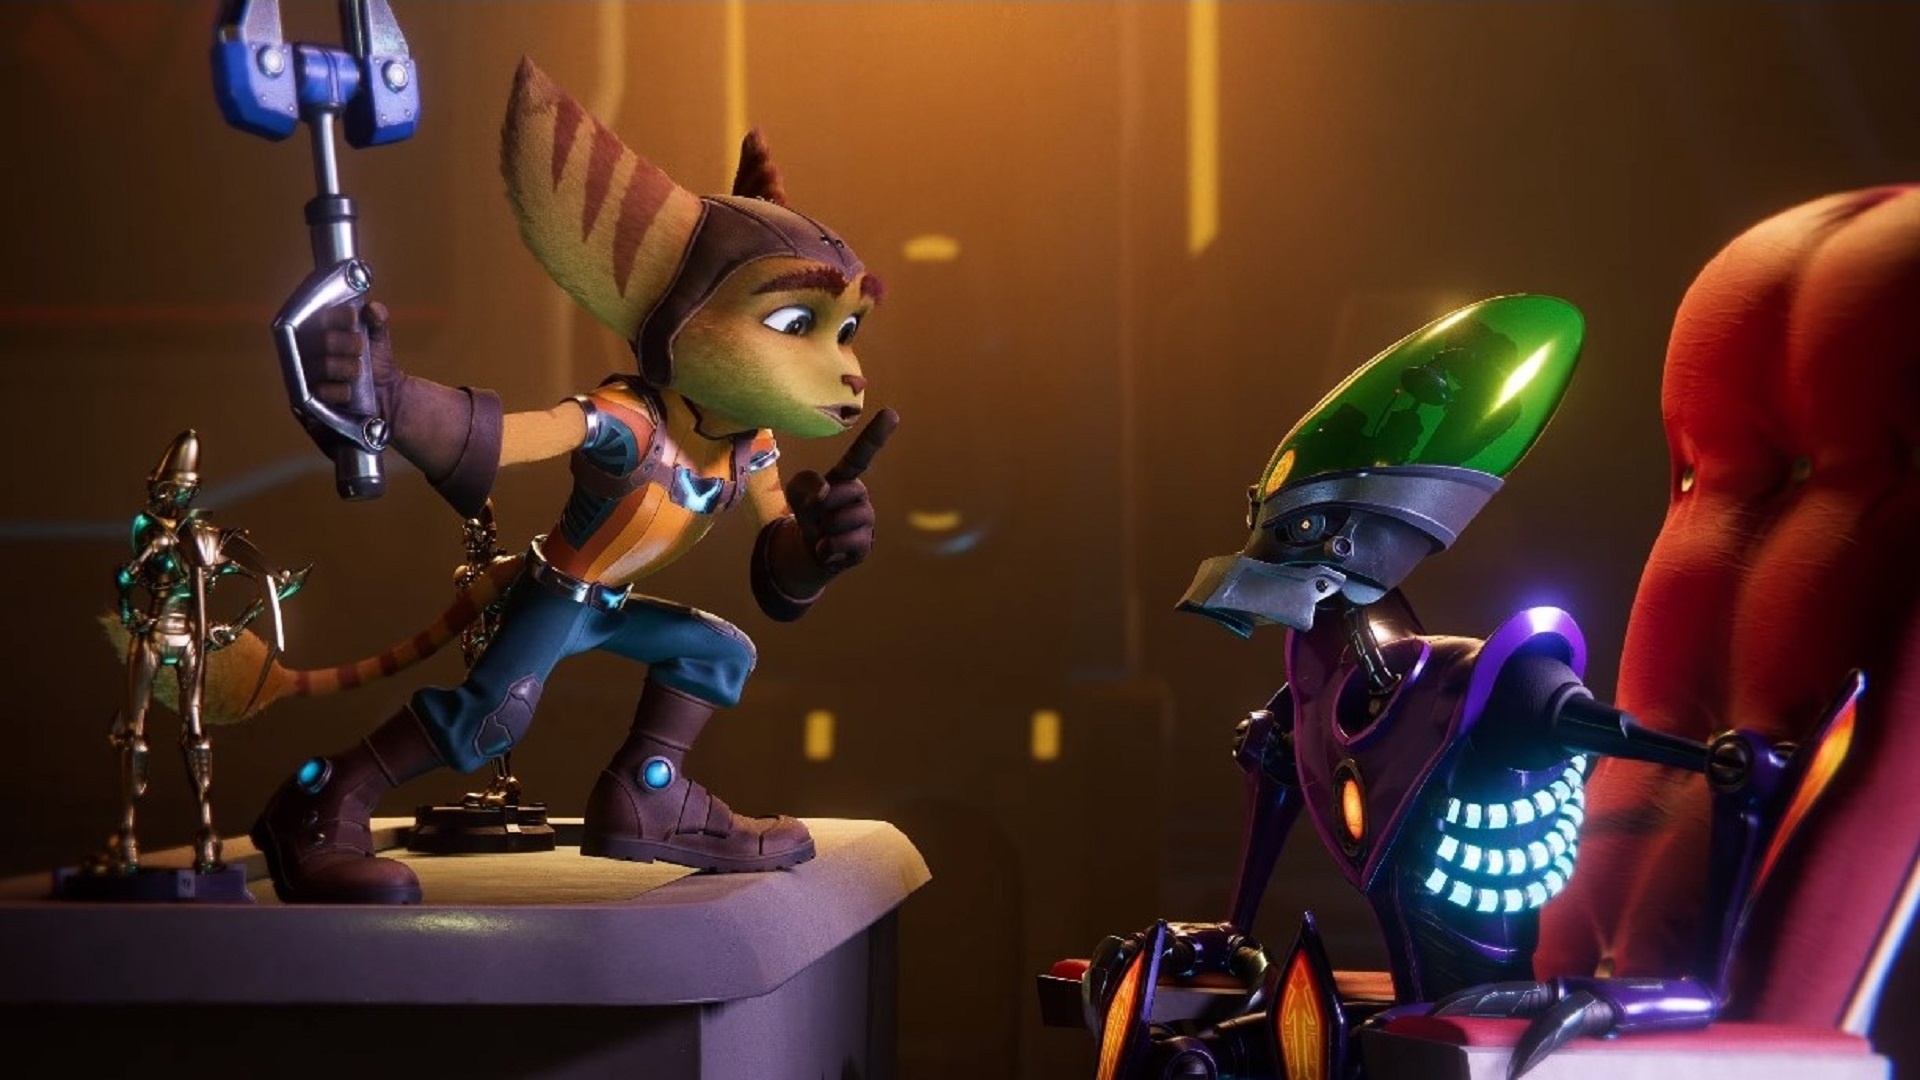 ratchet and clank rift apart image